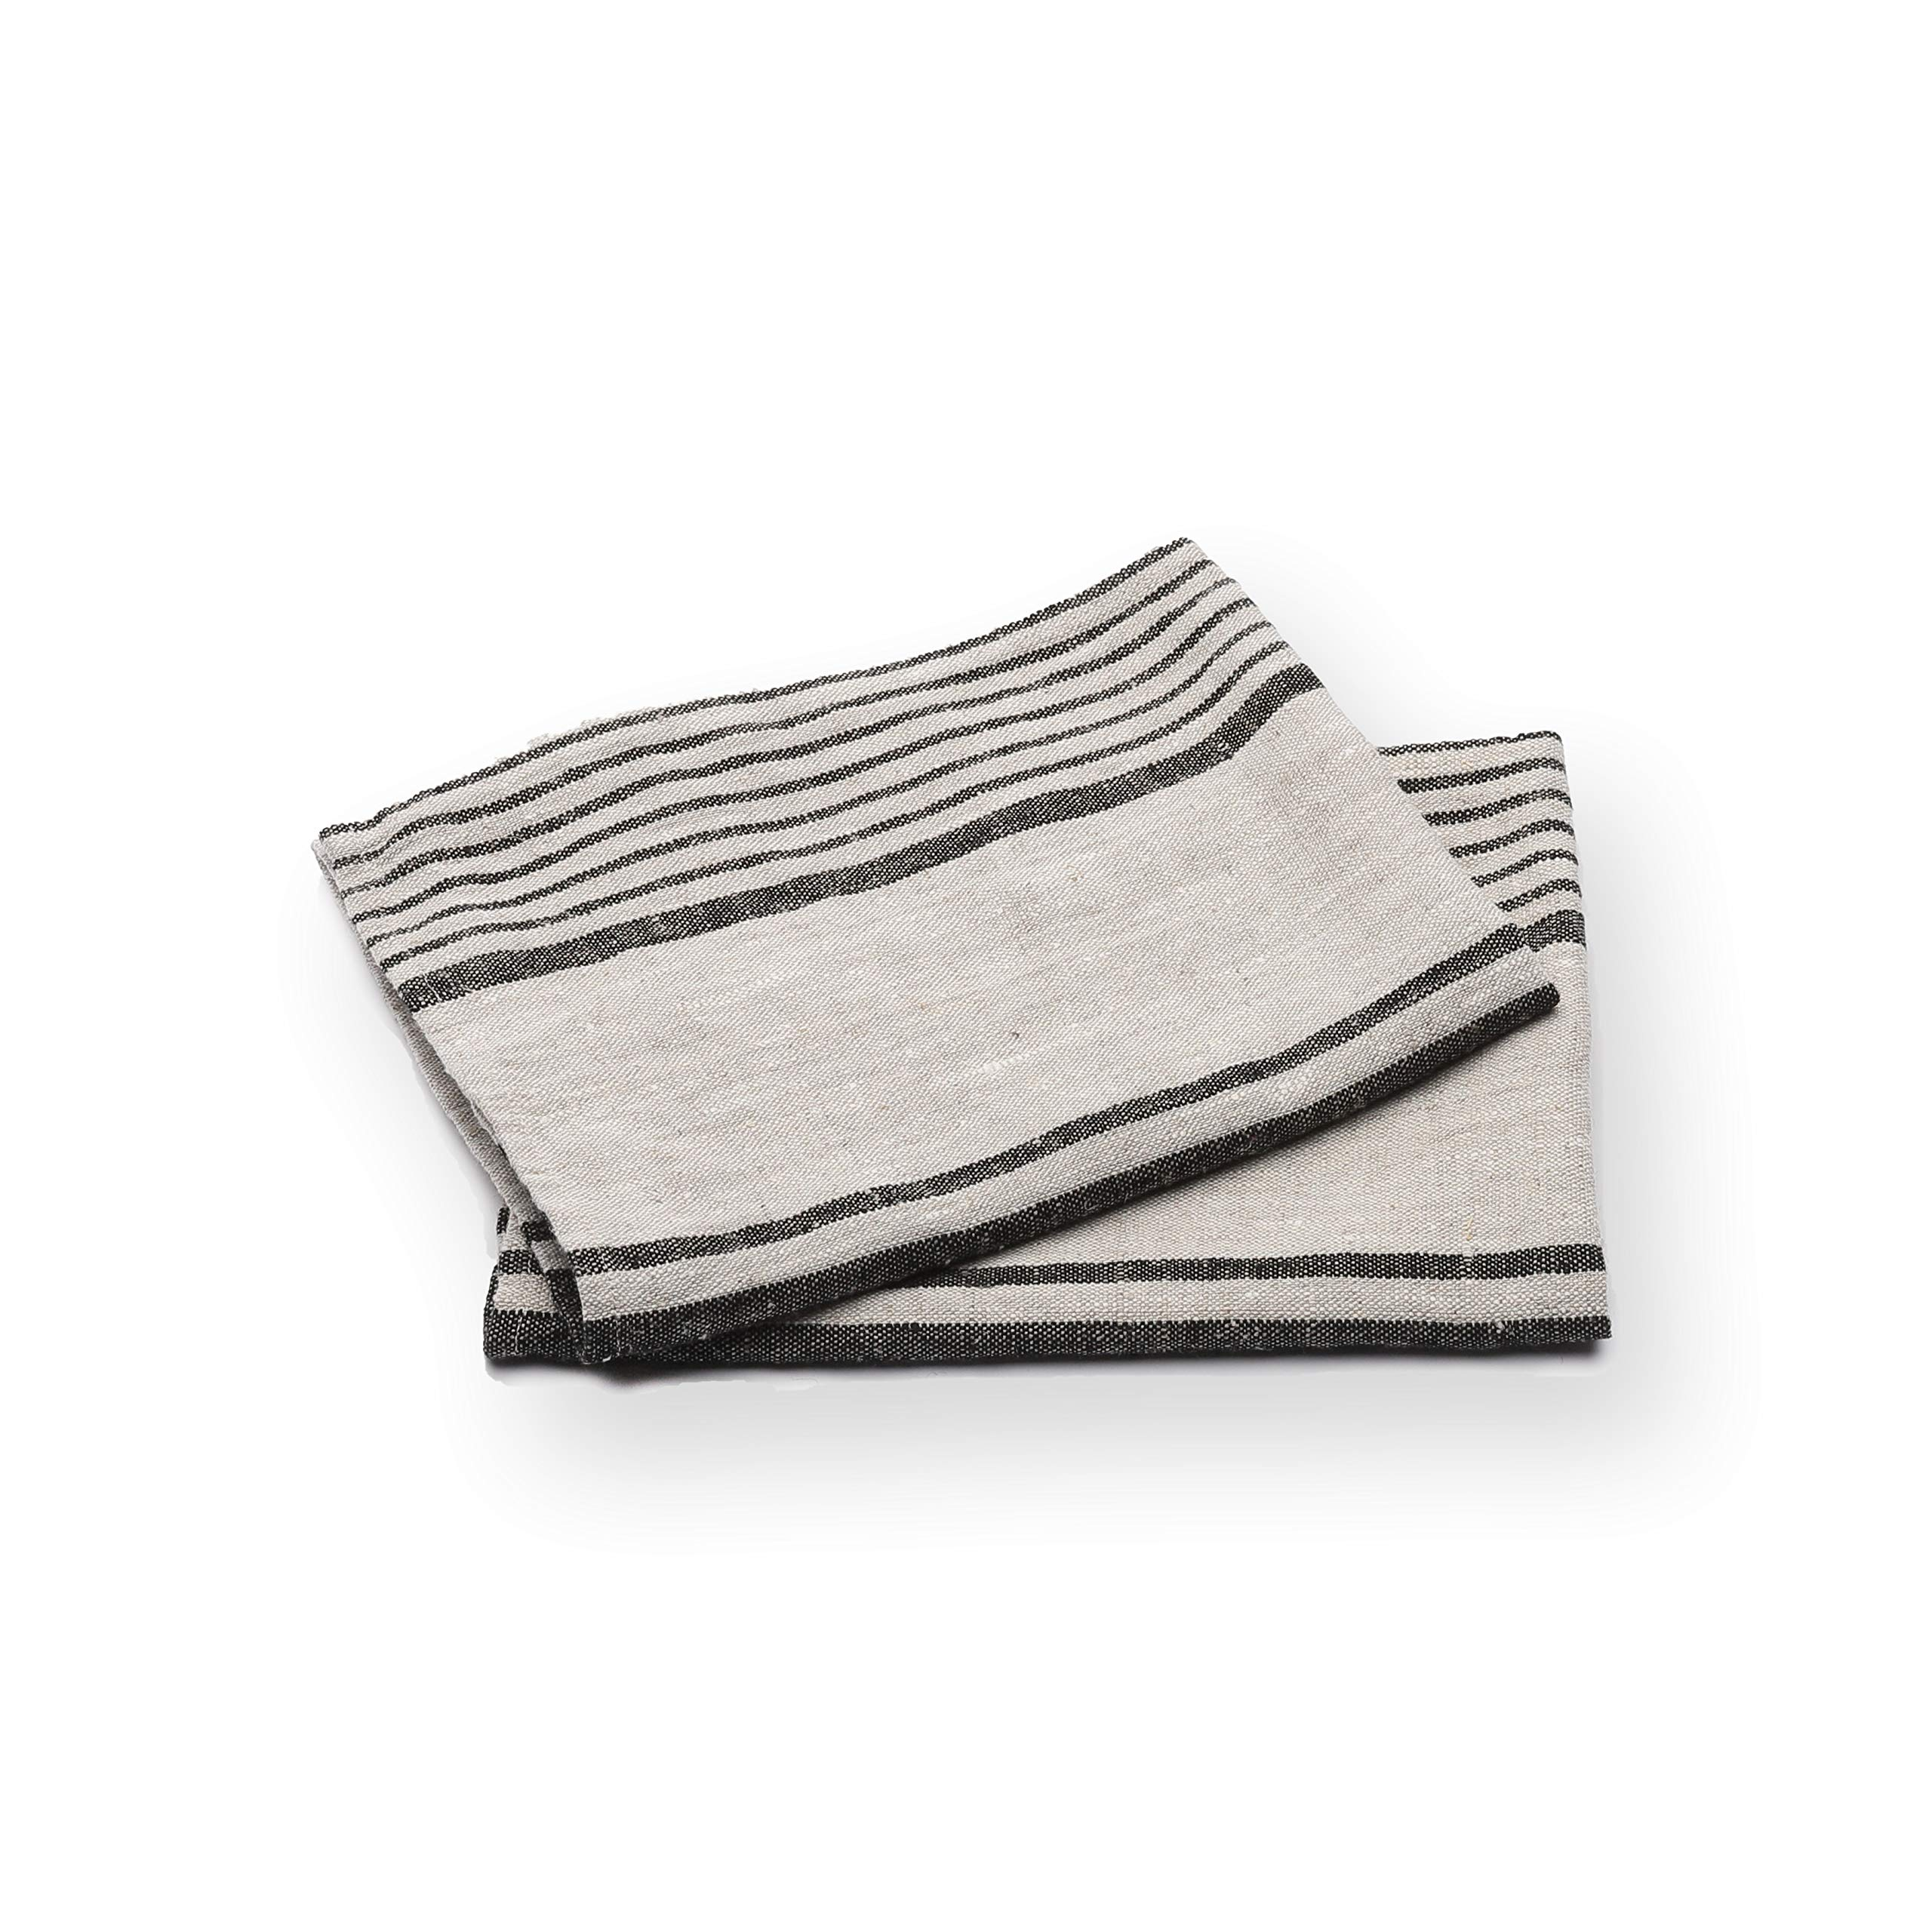 LinenMe Set of 2 Provence Linen Hand Towels, Standard, Black Natural Striped, Prewashed 100% Linen, Made in Europe, Produced from European Linen.